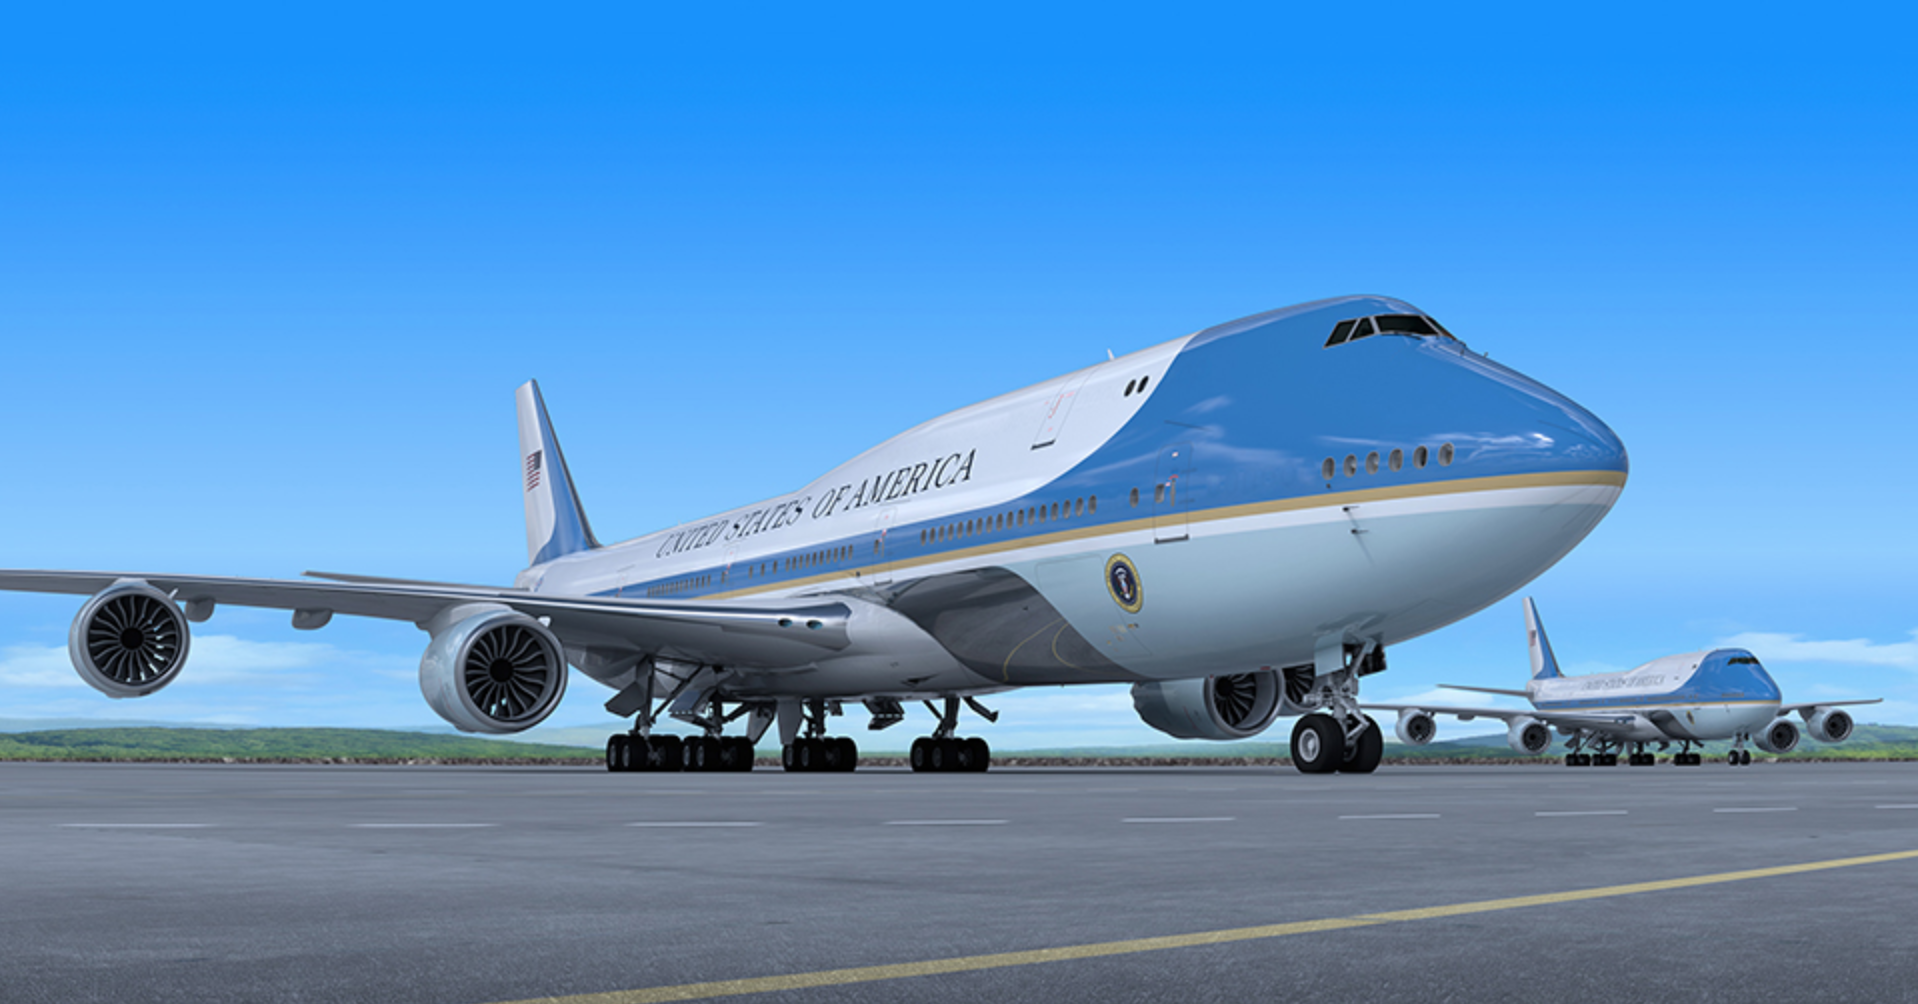 FAA Restricts Flights Over Iraq, Iran Following Missile Strikes | New air force one, Air force, Air force ones